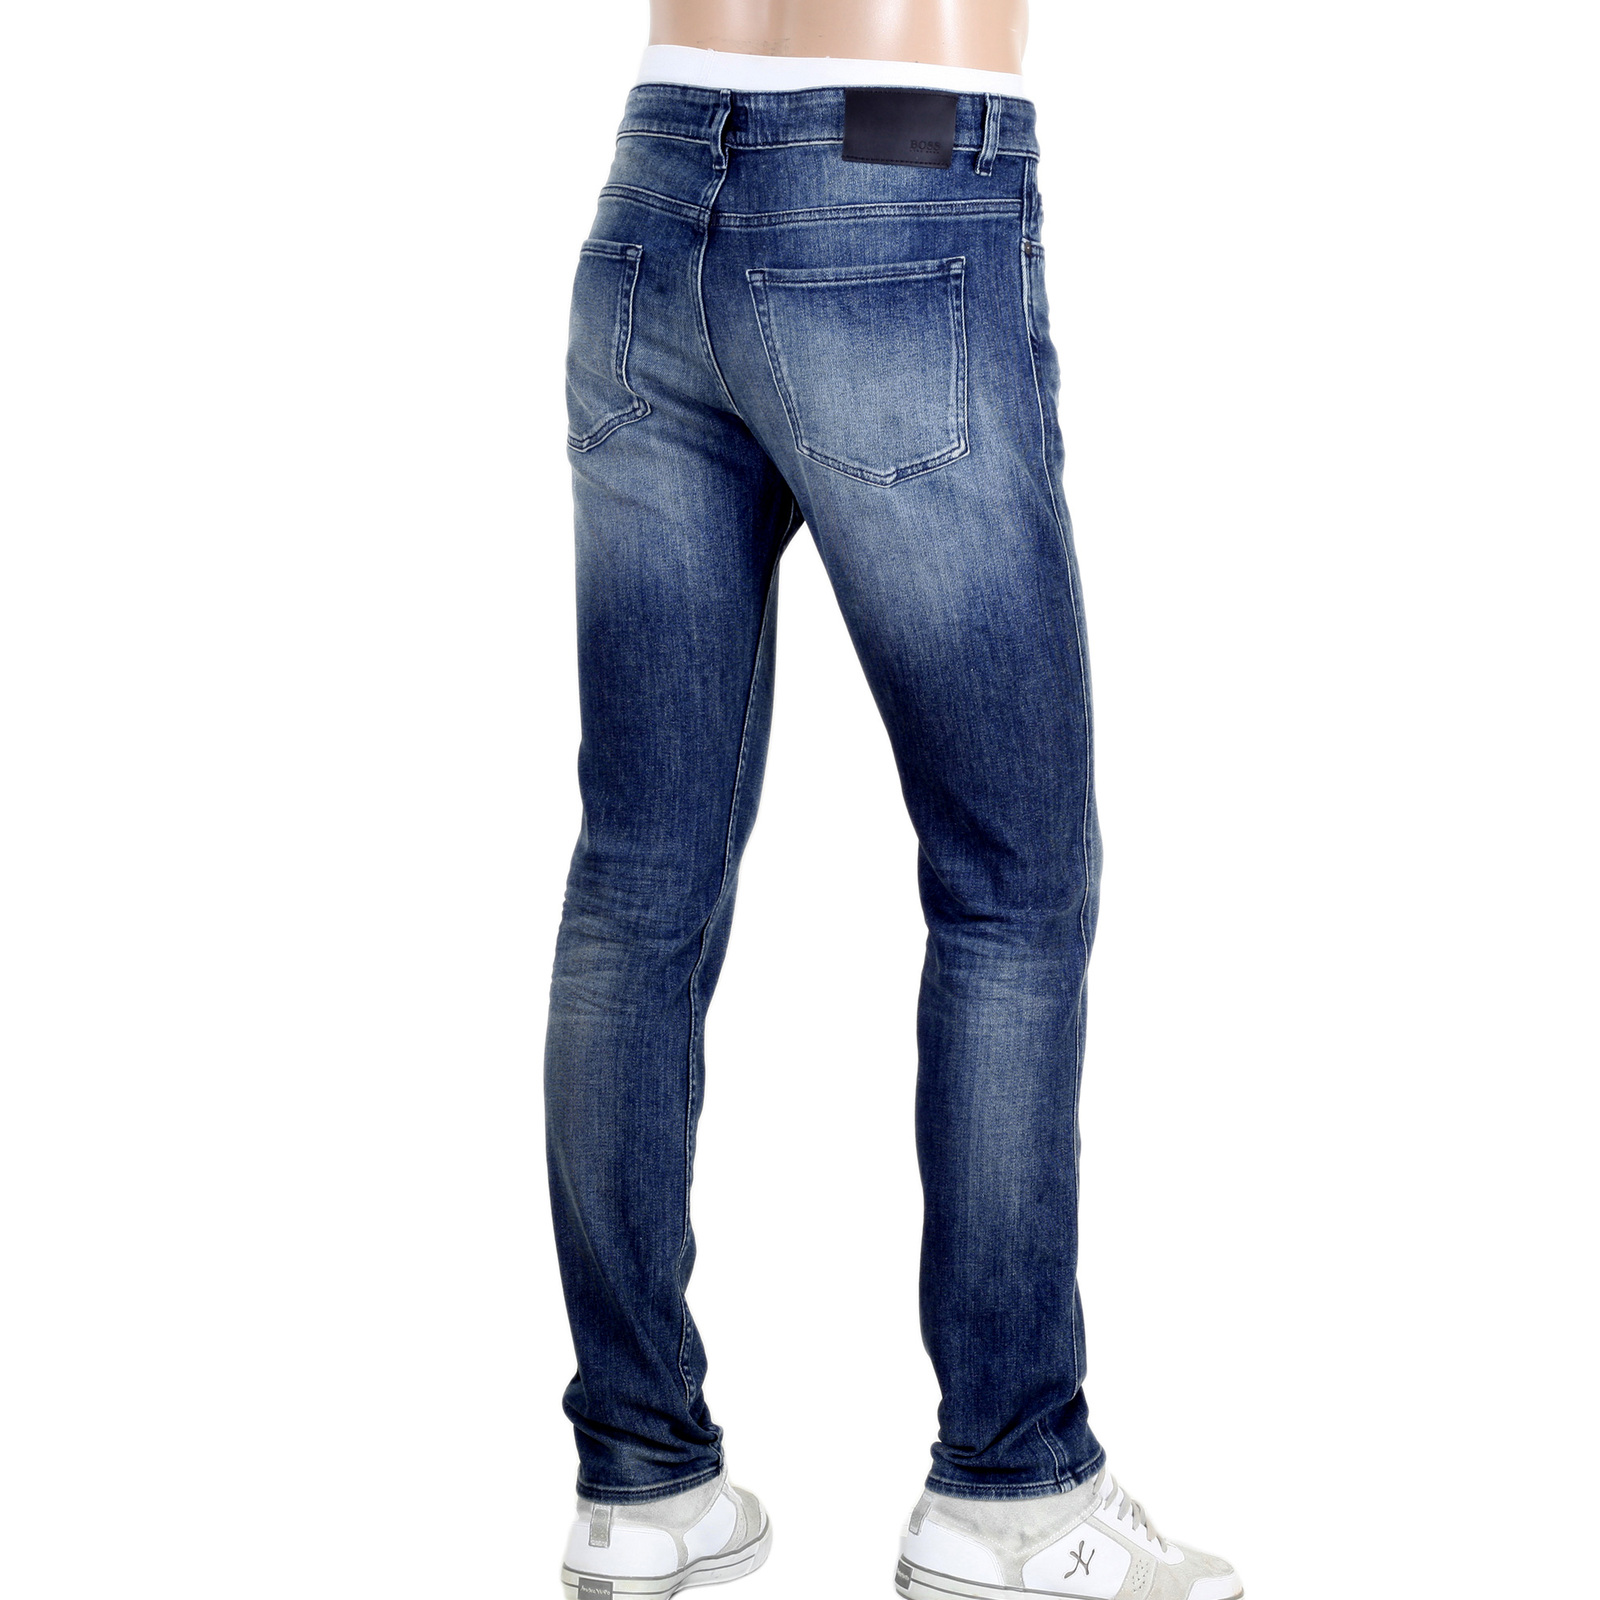 9880febc704b Shop for Boss Black Delaware 3 Slim Fit Jeans at Togged